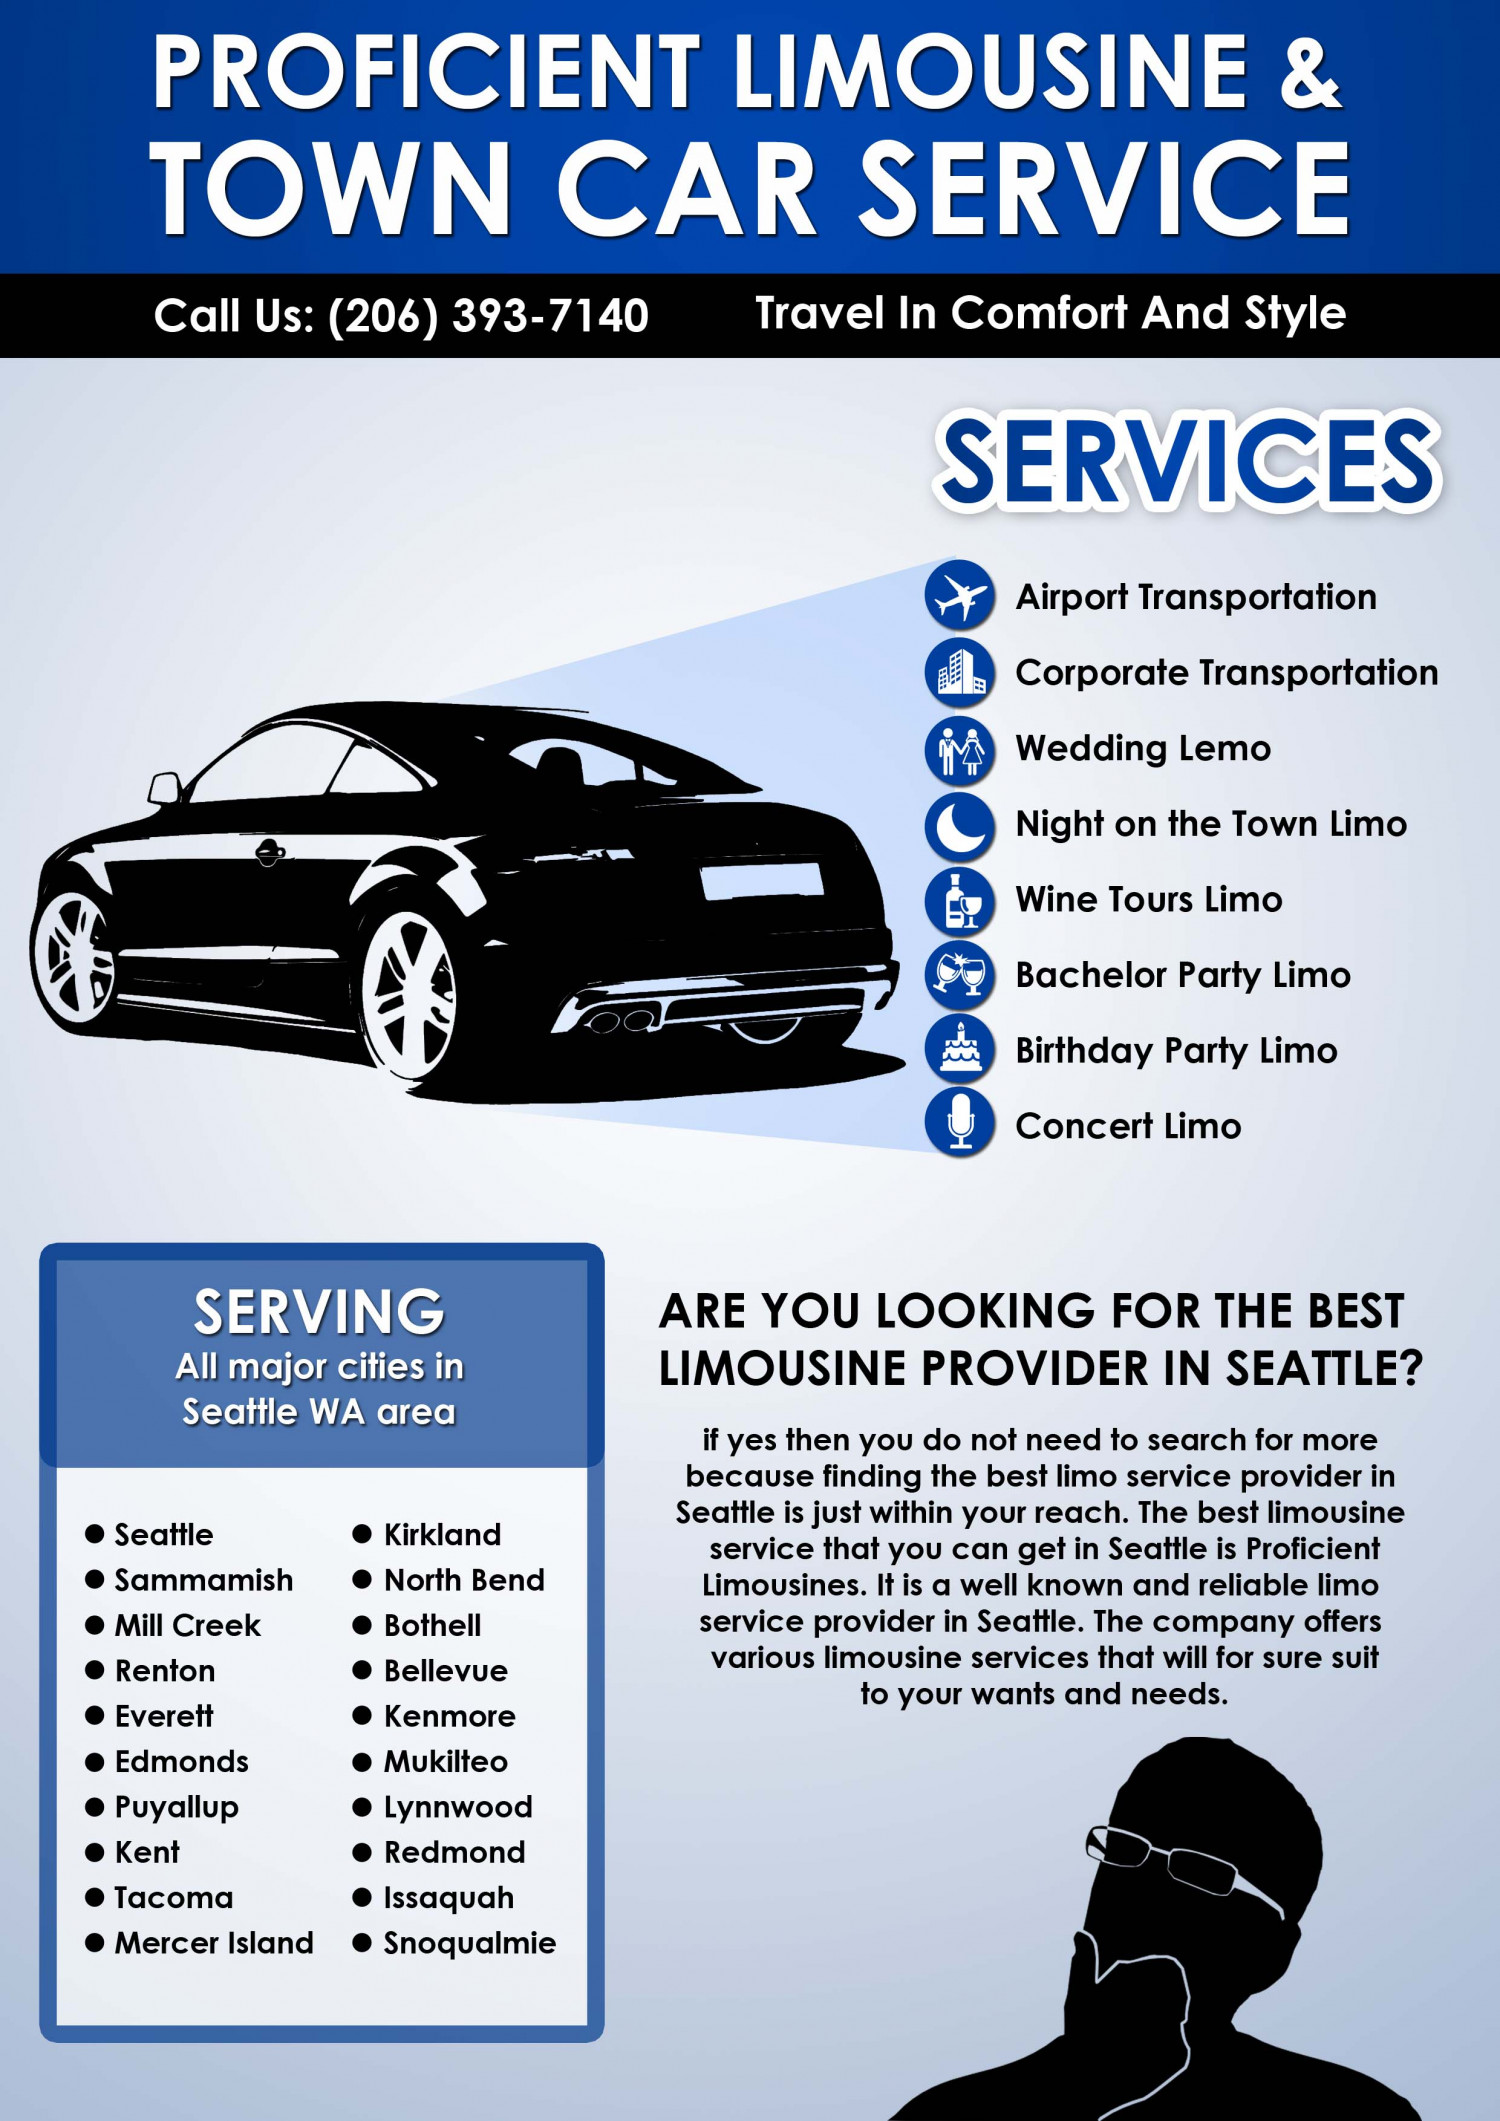 Proficient Limousine Seattle Town Car Service